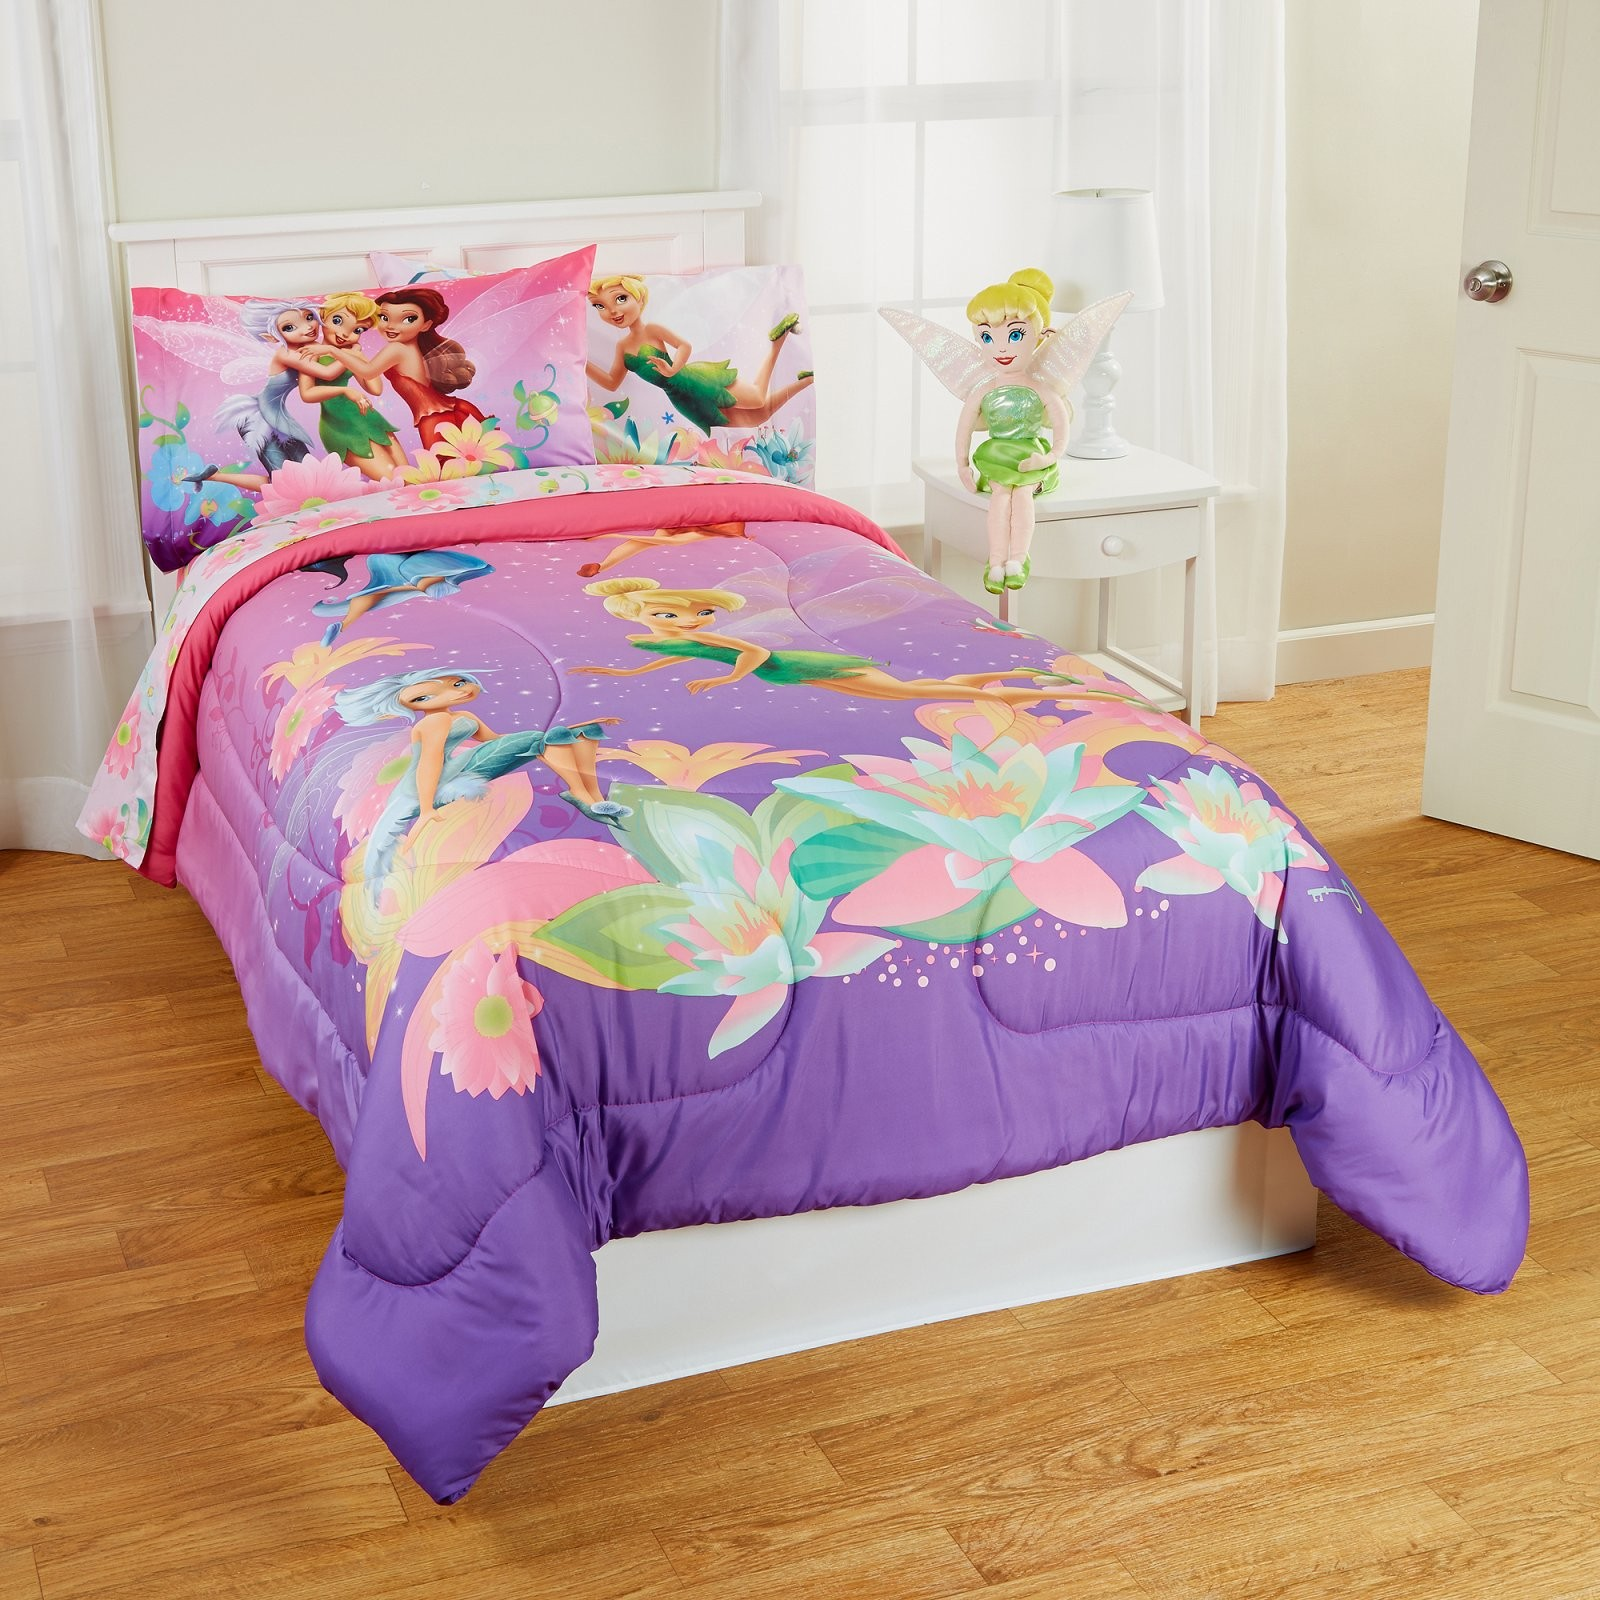 Disney Tinkerbell Bedding Sets von Tinker Bell Bed Sets Bild